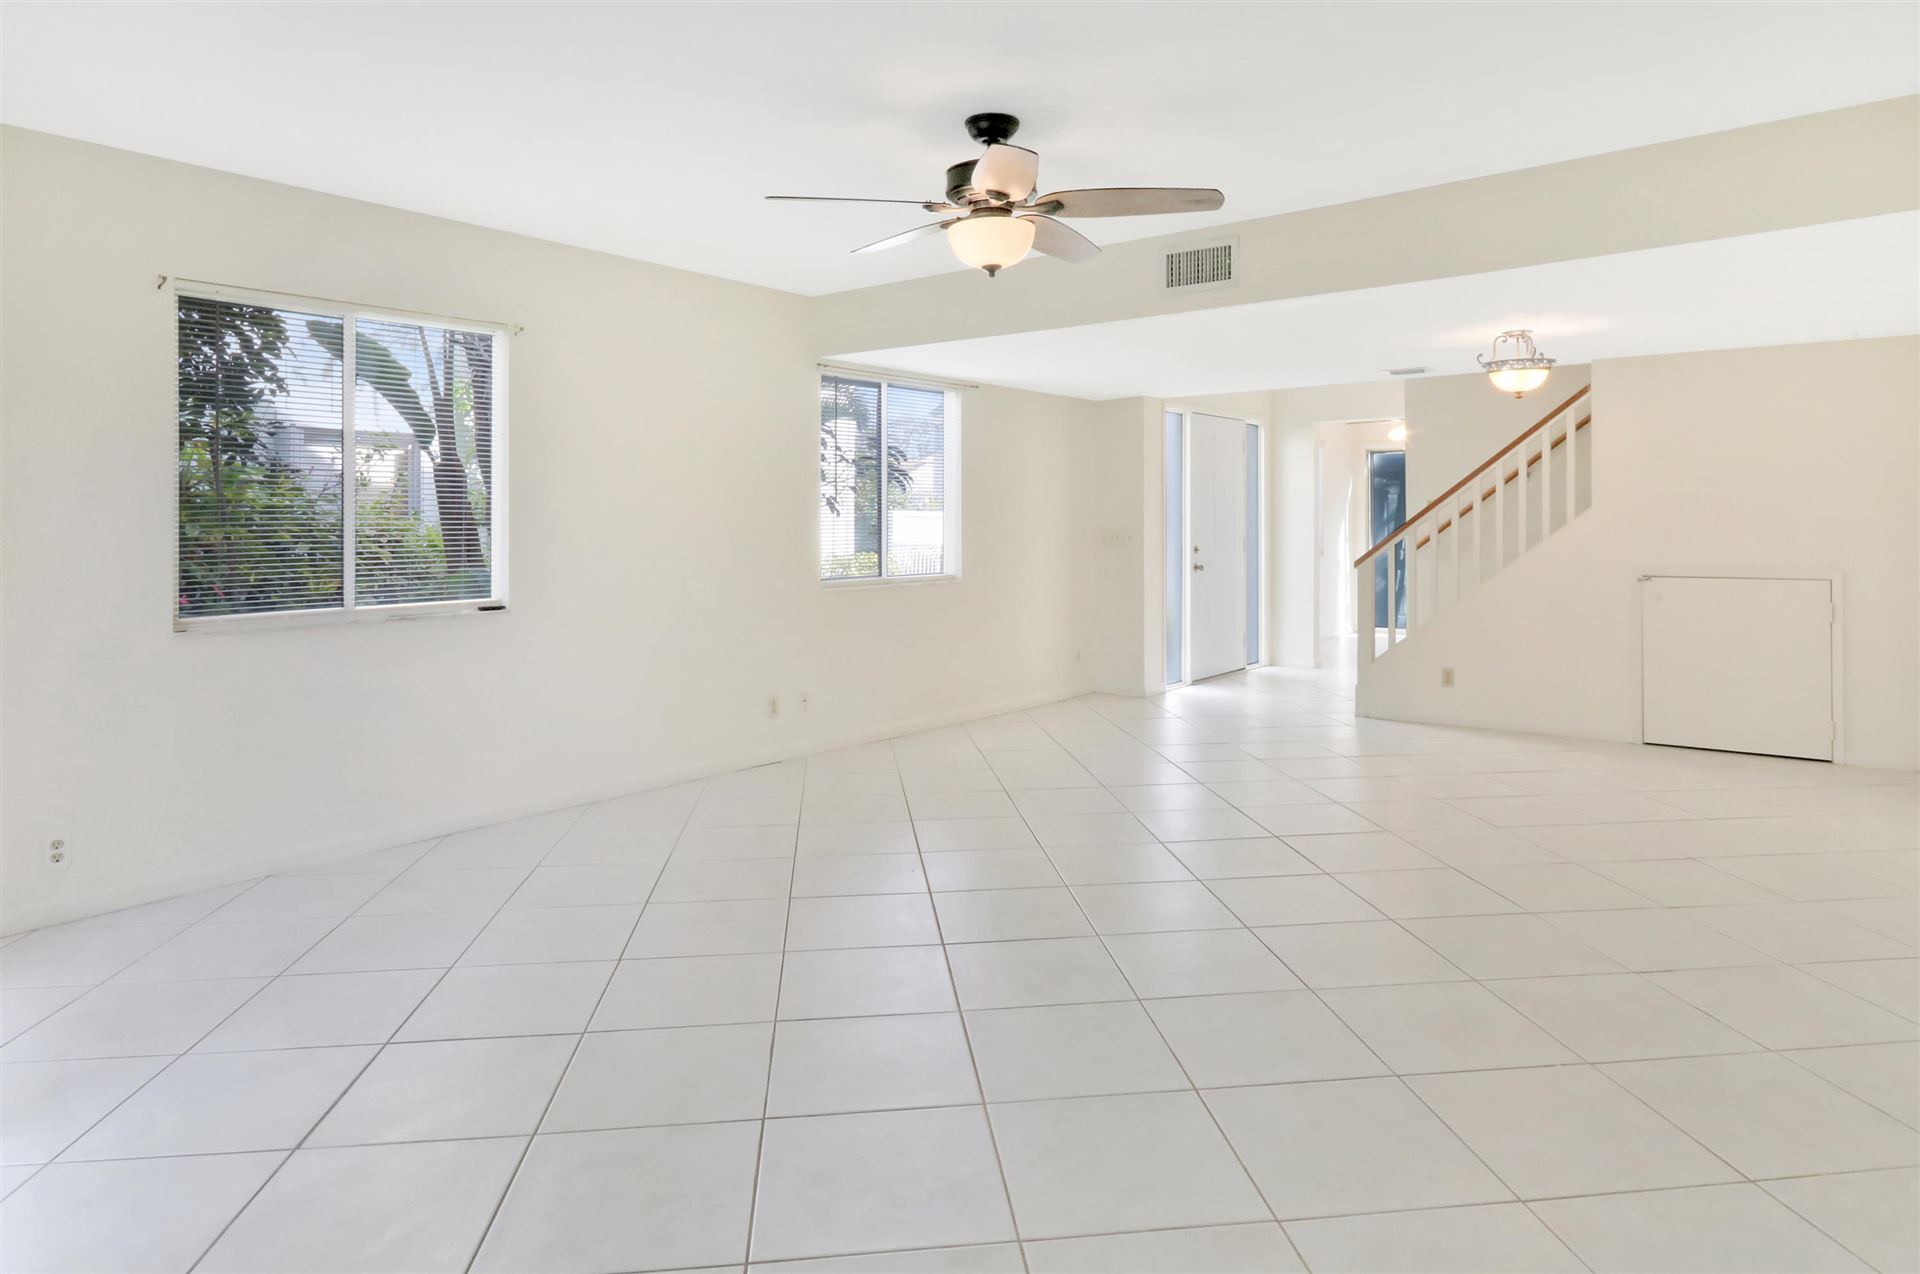 Photo of 6279 Riverwalk Lane #8, Jupiter, FL 33458 (MLS # RX-10683960)